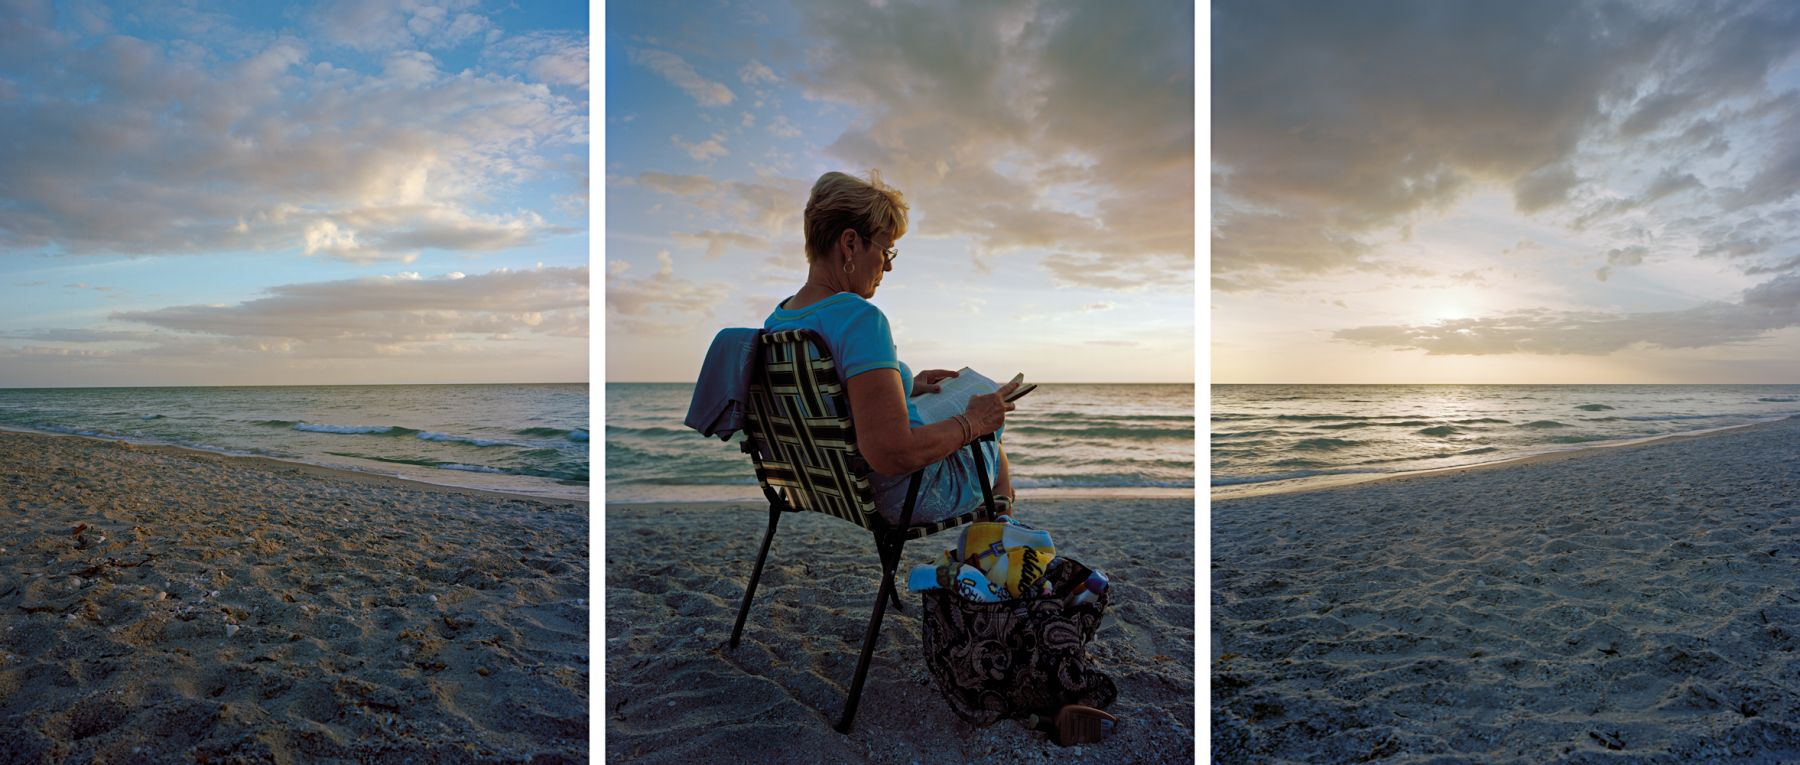 Tending to Doubt, 2009. Three-panel archival pigment print, available as 24 x 60 or 40 x 90 inches.